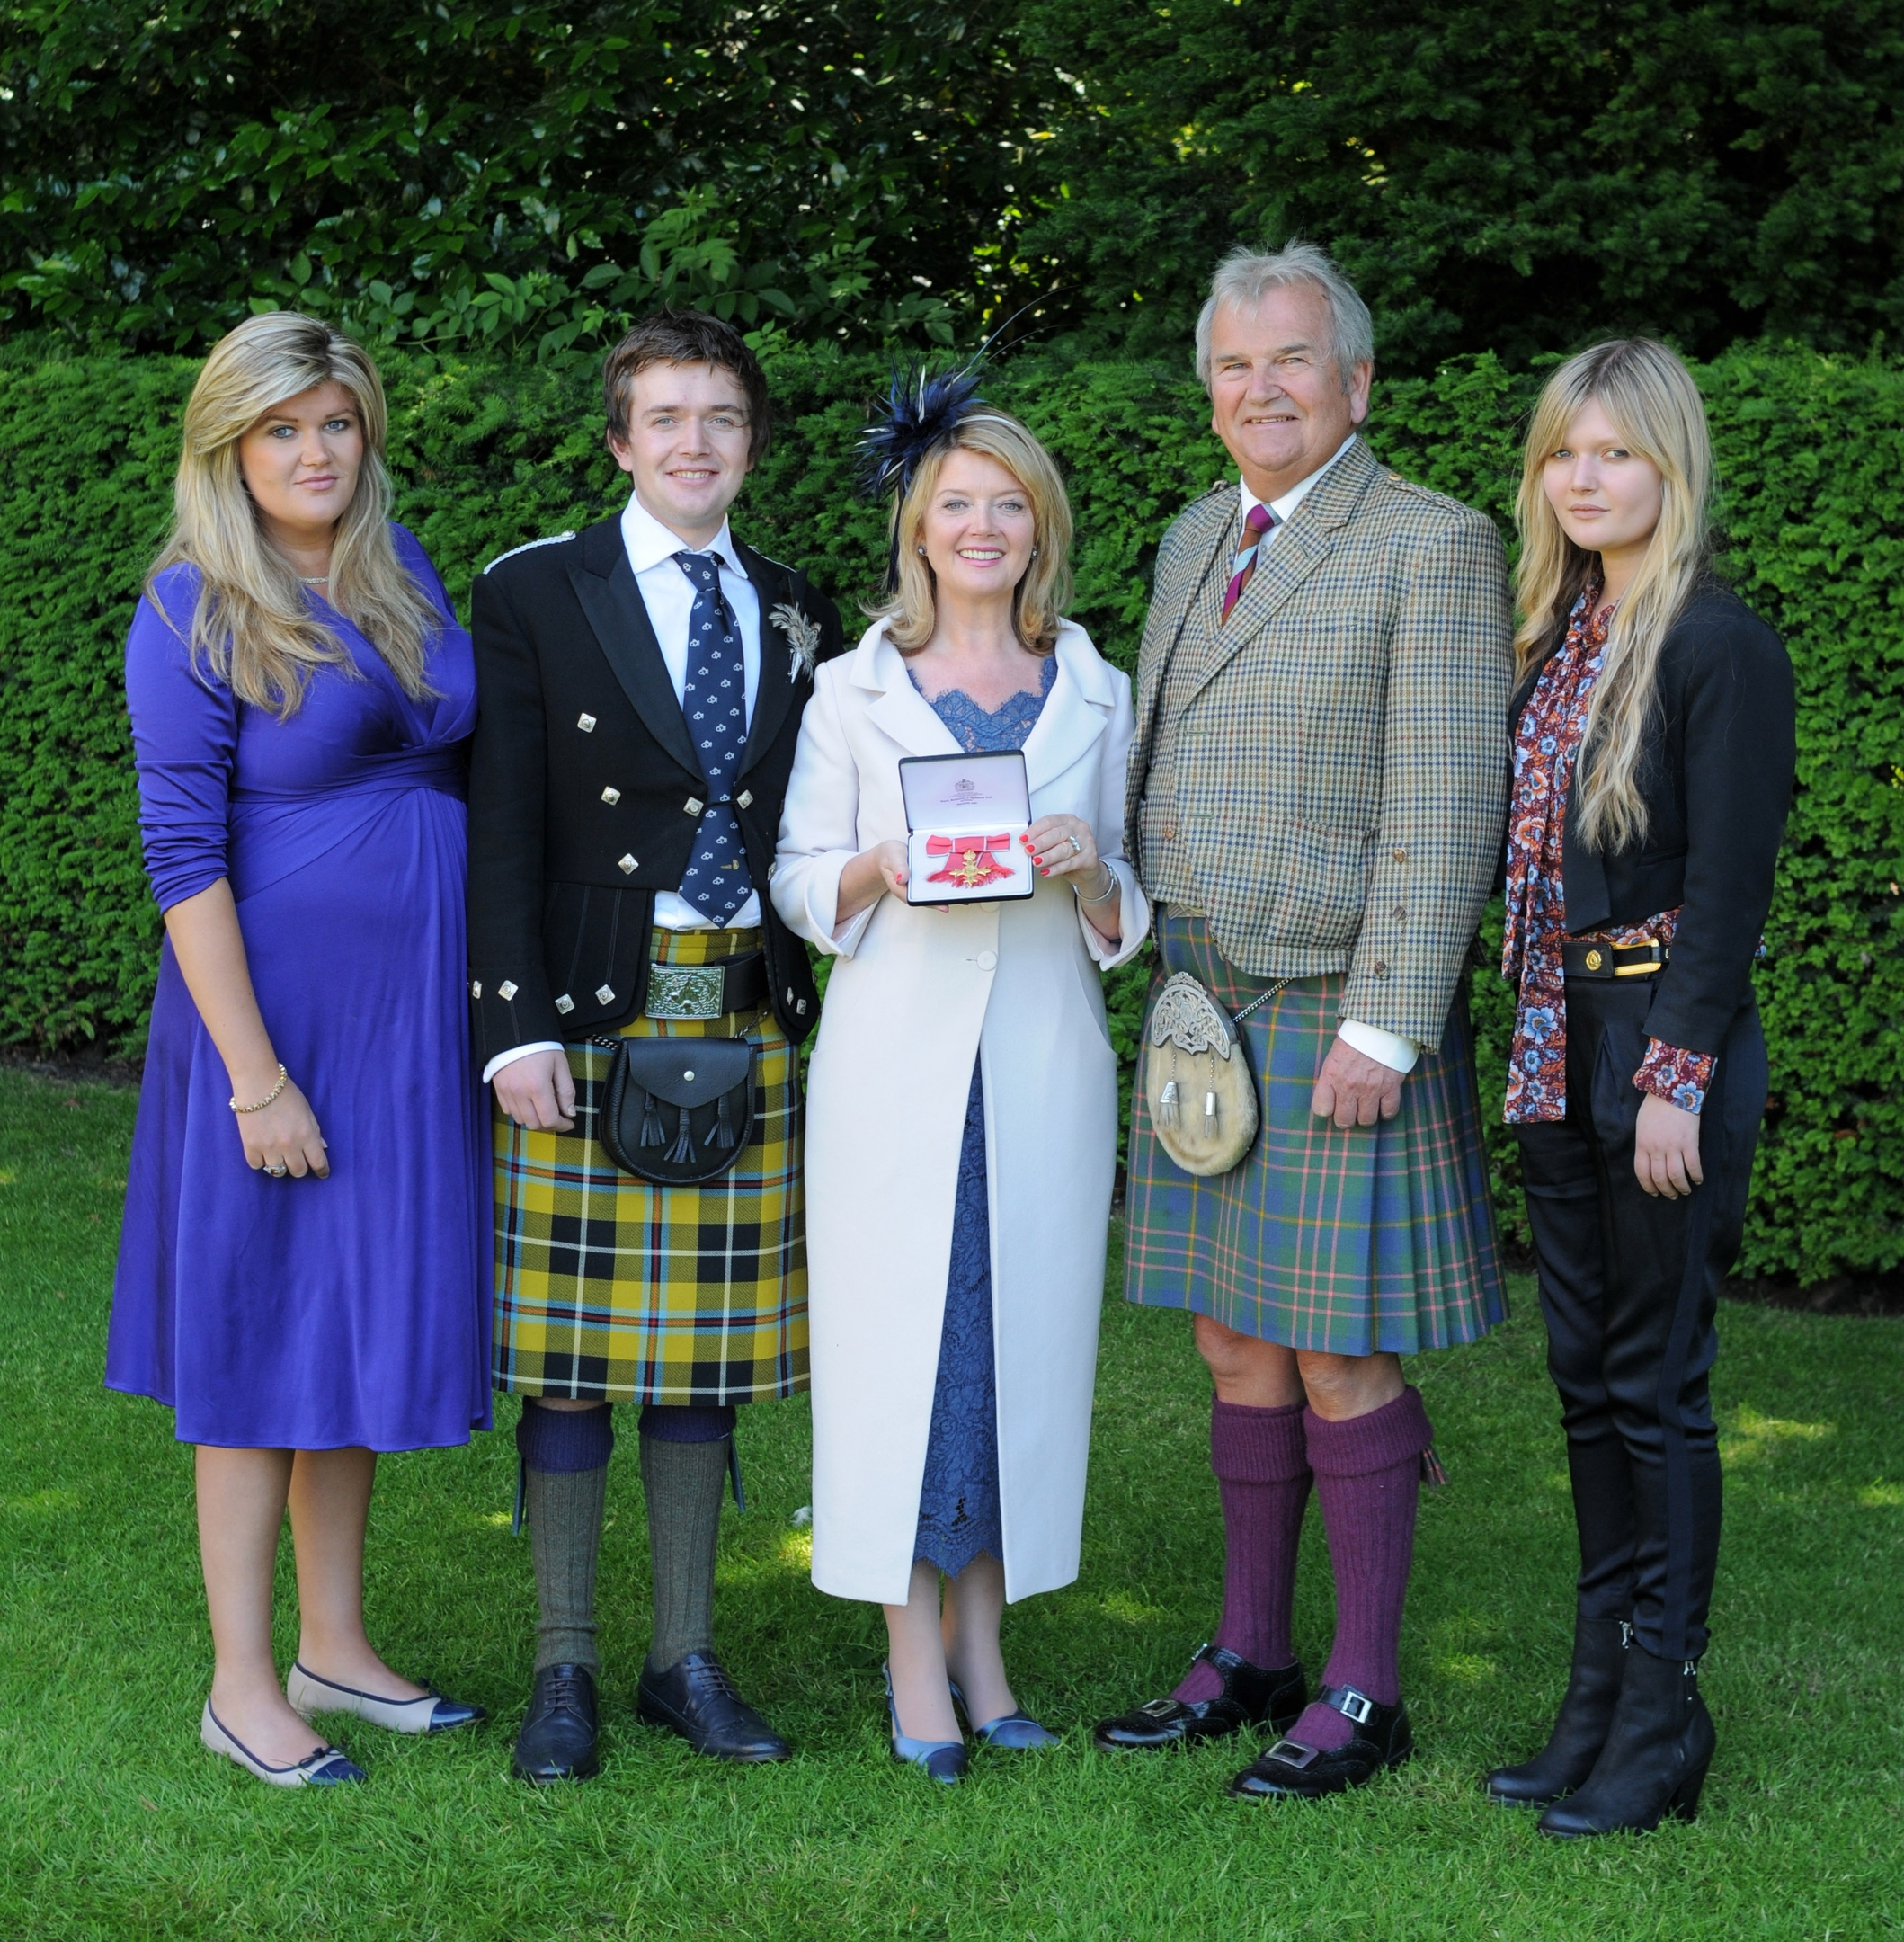 Dr Fiona Kennedy, pictured with her family after she received her OBE from Queen Elizabeth II at the Palace of Holyroodhouse in Edinburgh. OBE. Picture date: Tuesday 1 July 2014. Copyright: Palace Photos